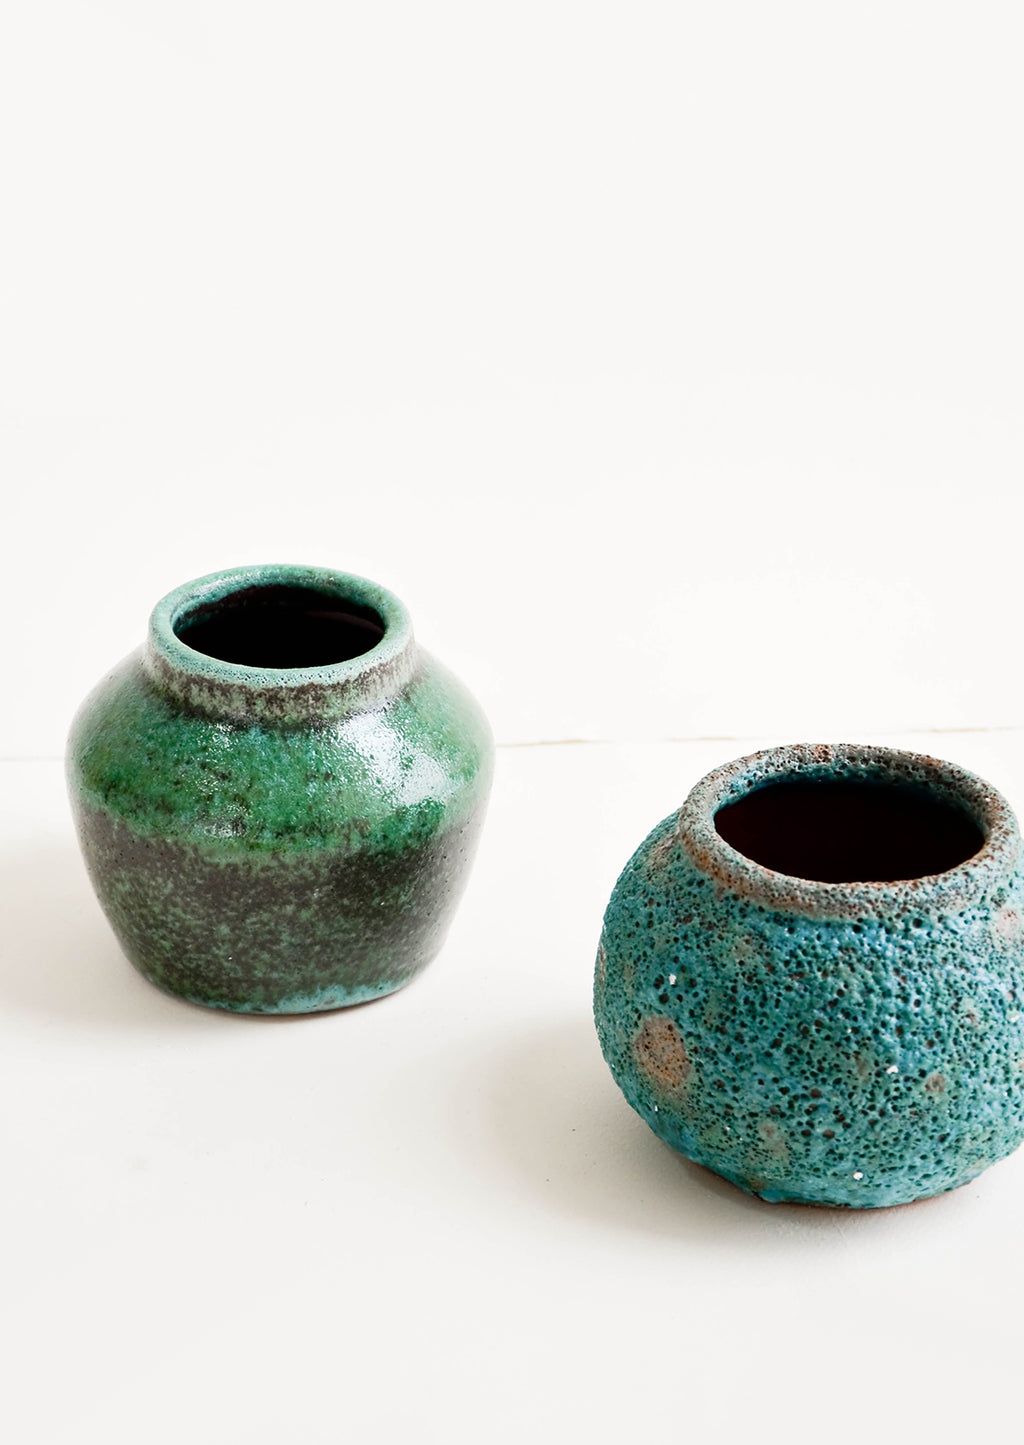 Wide Vase: Short vases in textured turquoise glaze with wide mouth openings